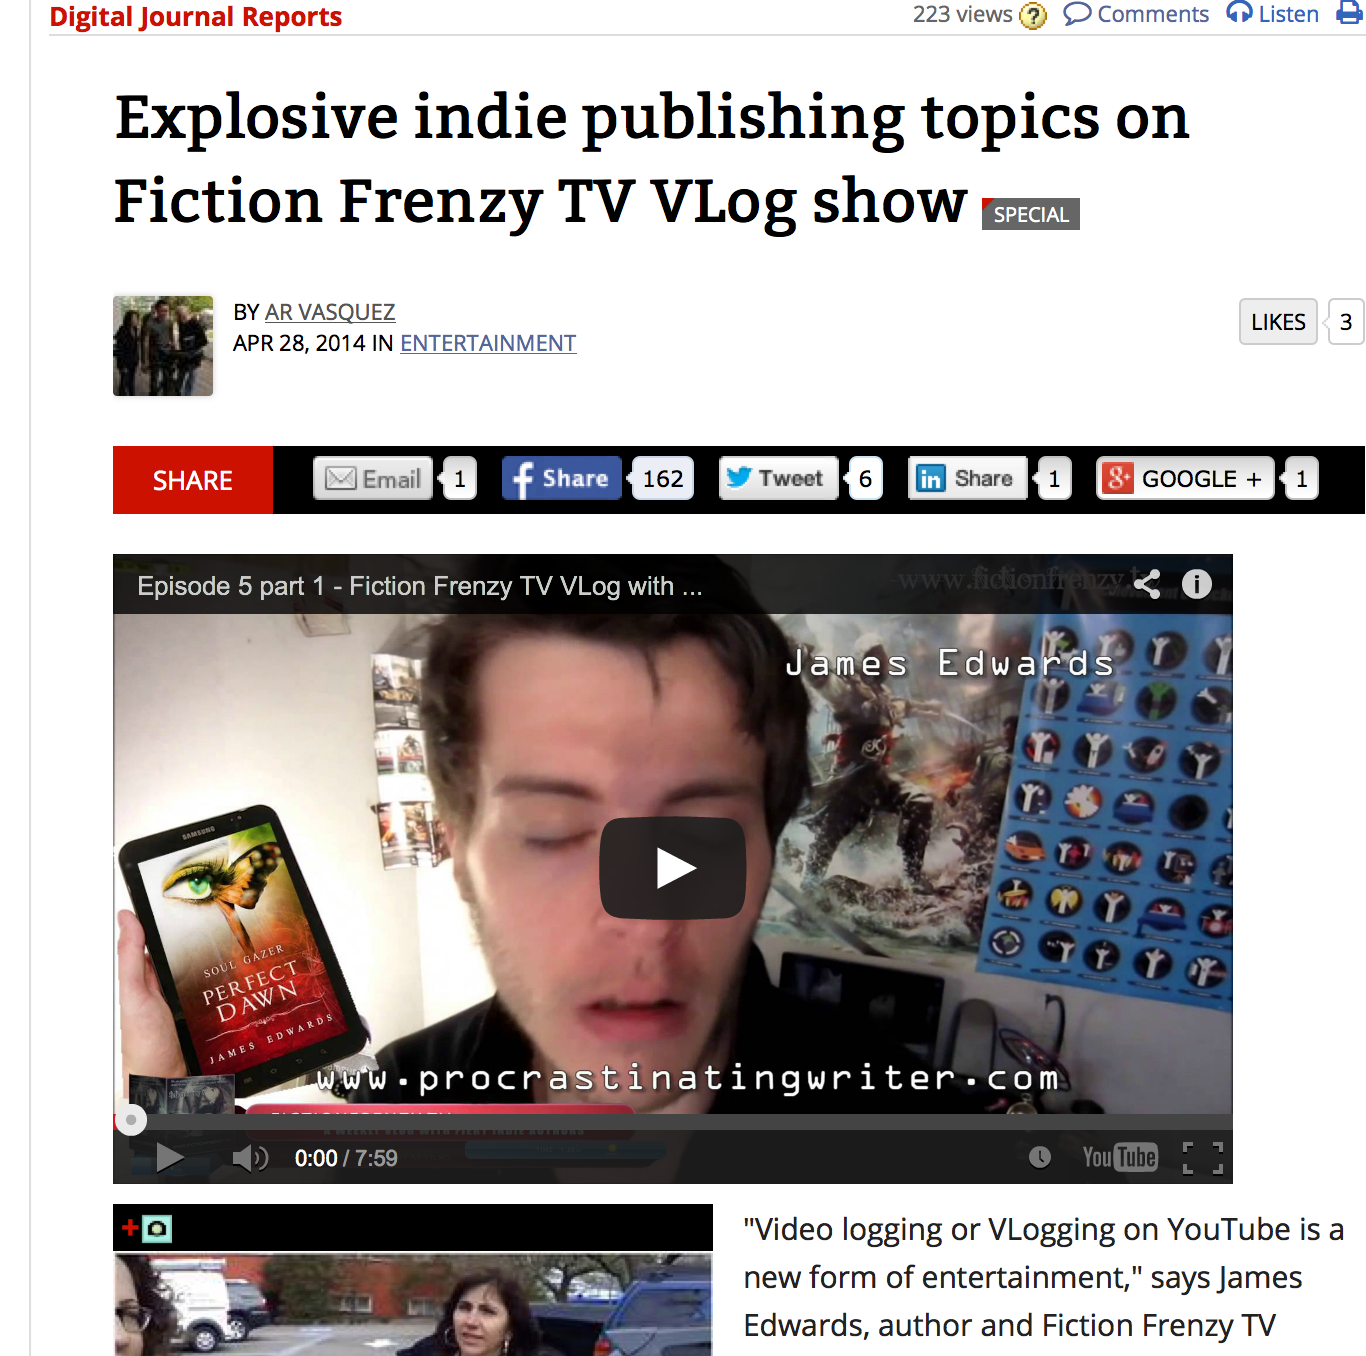 Fiction Frenzy TV Vlog channel